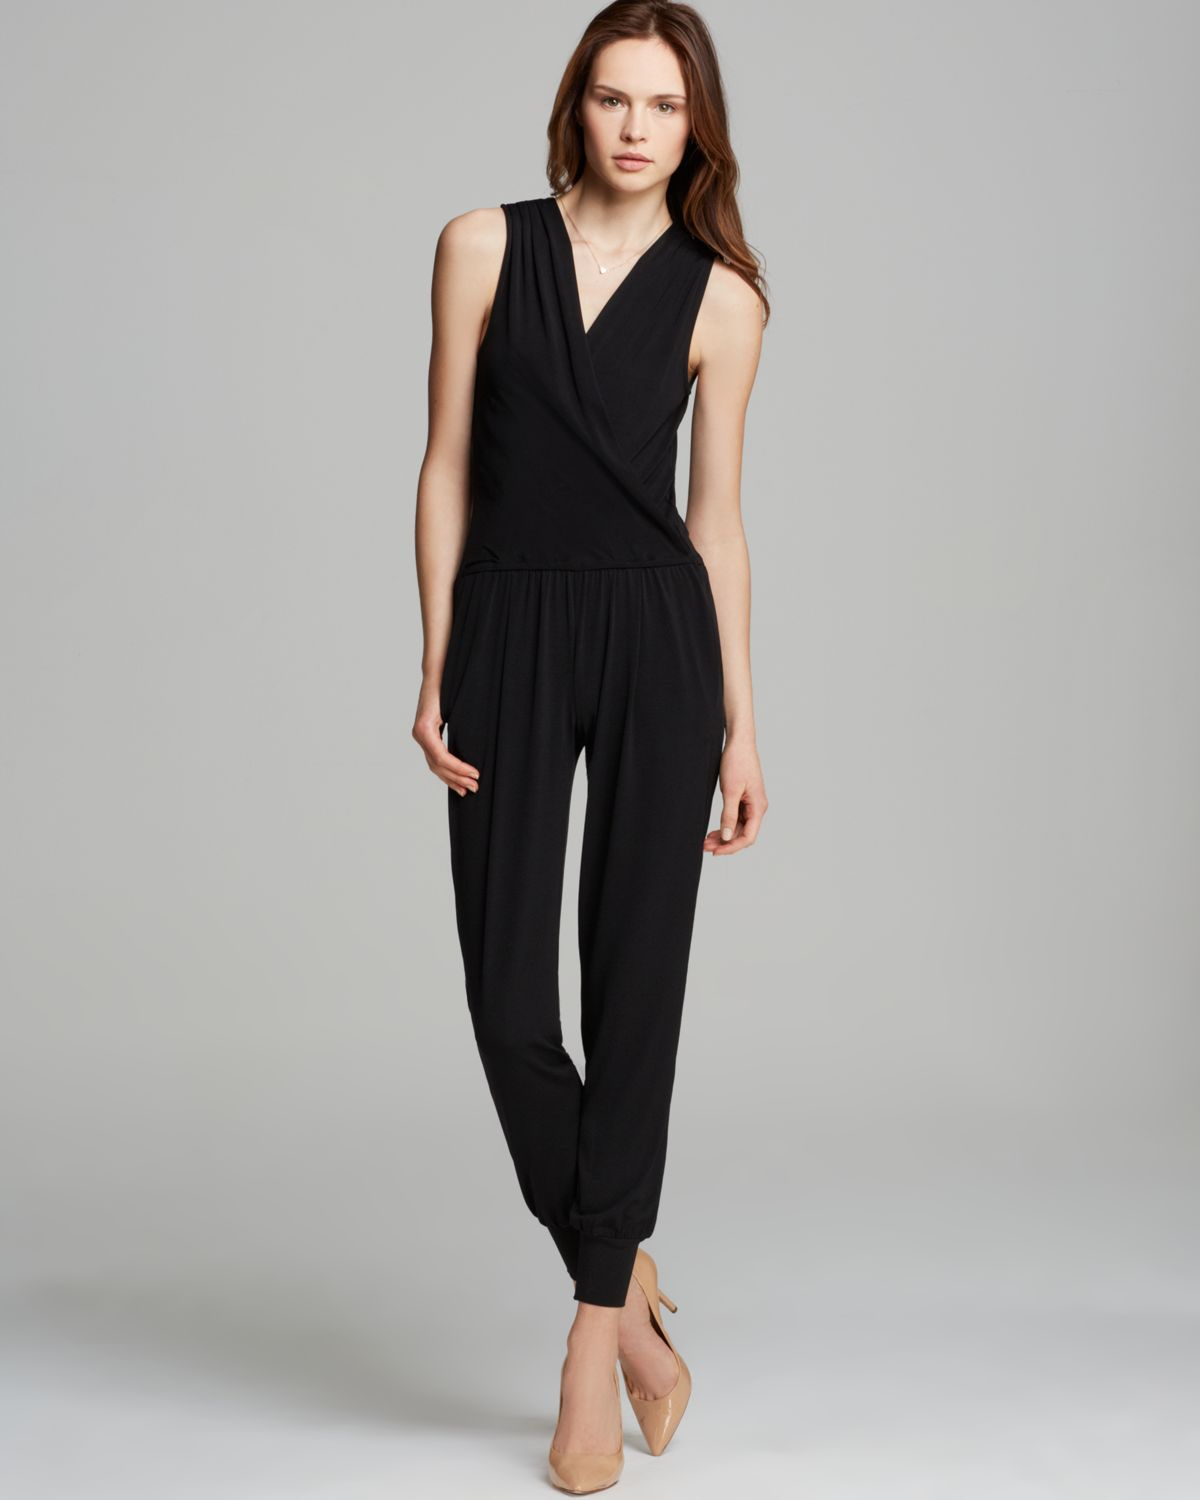 A chic sleeveless utilitarian inspired jumpsuit. All-occasion ready with a flattering V shaped neckline and straight leg pants.